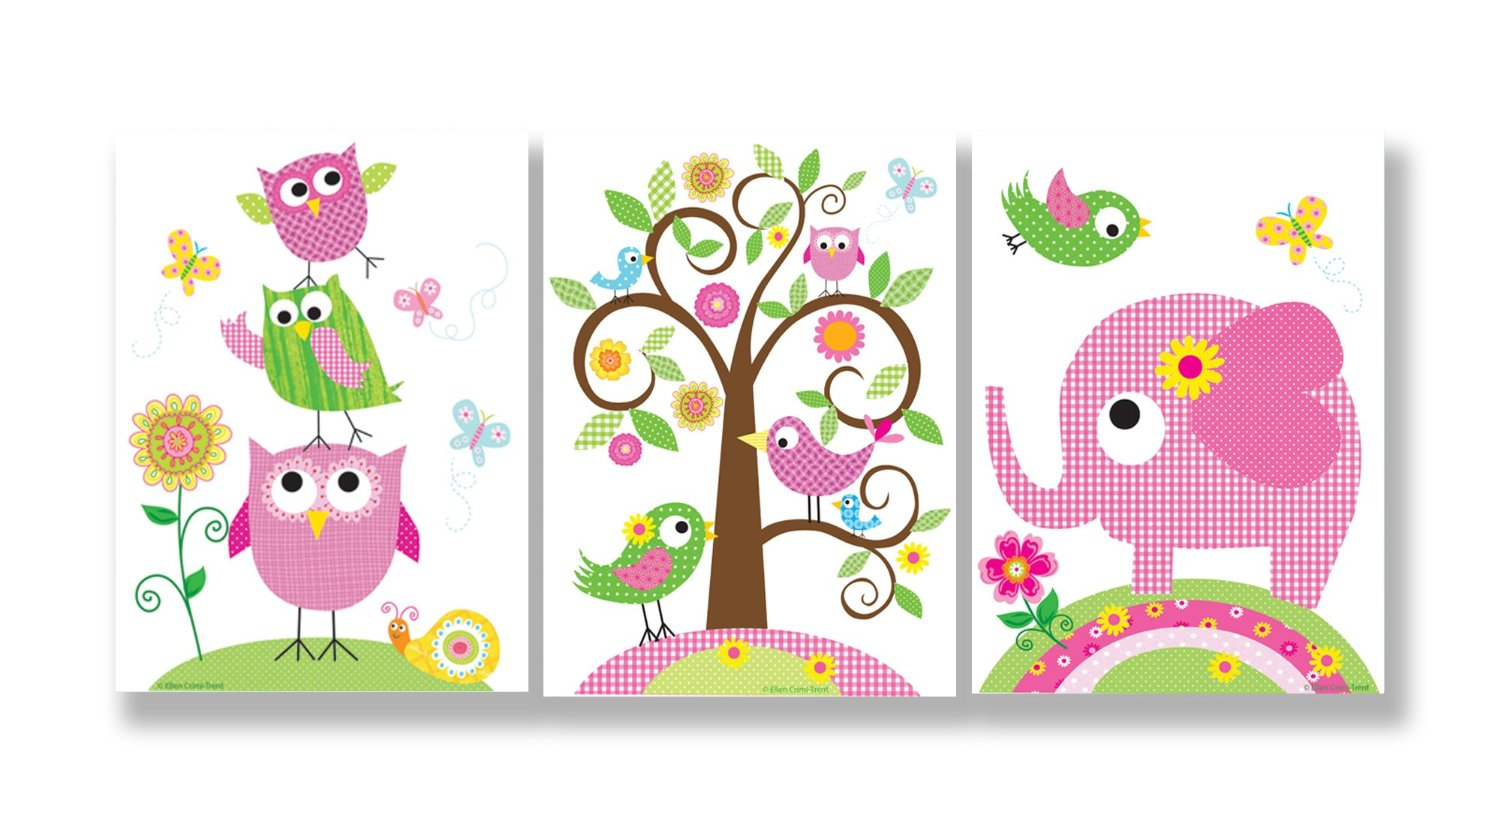 Whimsical Kids' Decor for the Nursery: Baby or Toddler ...